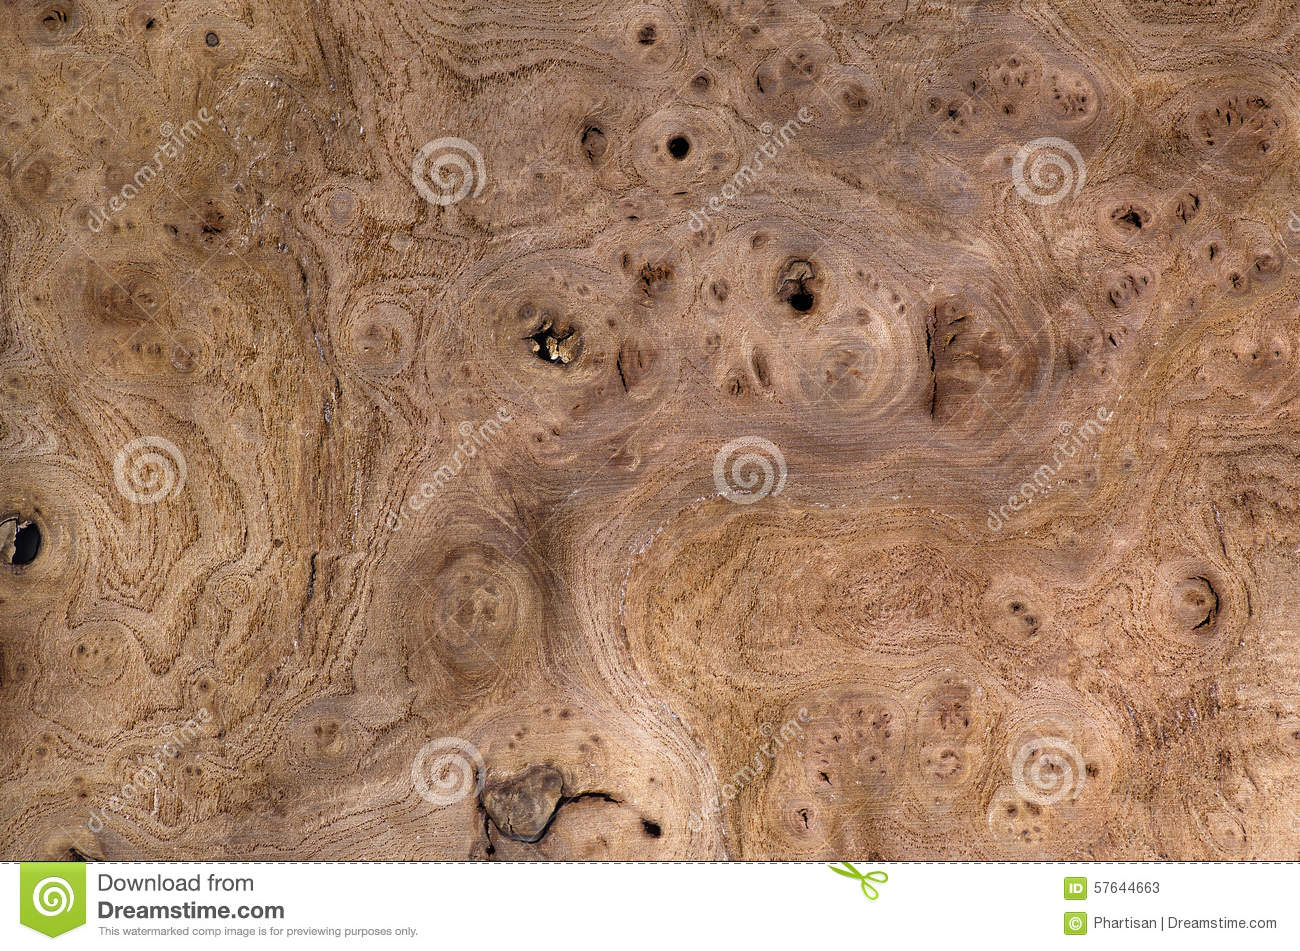 Texture en bois de grain fond exotique de placage photo stock image 57644663 for Placage de bois exotique